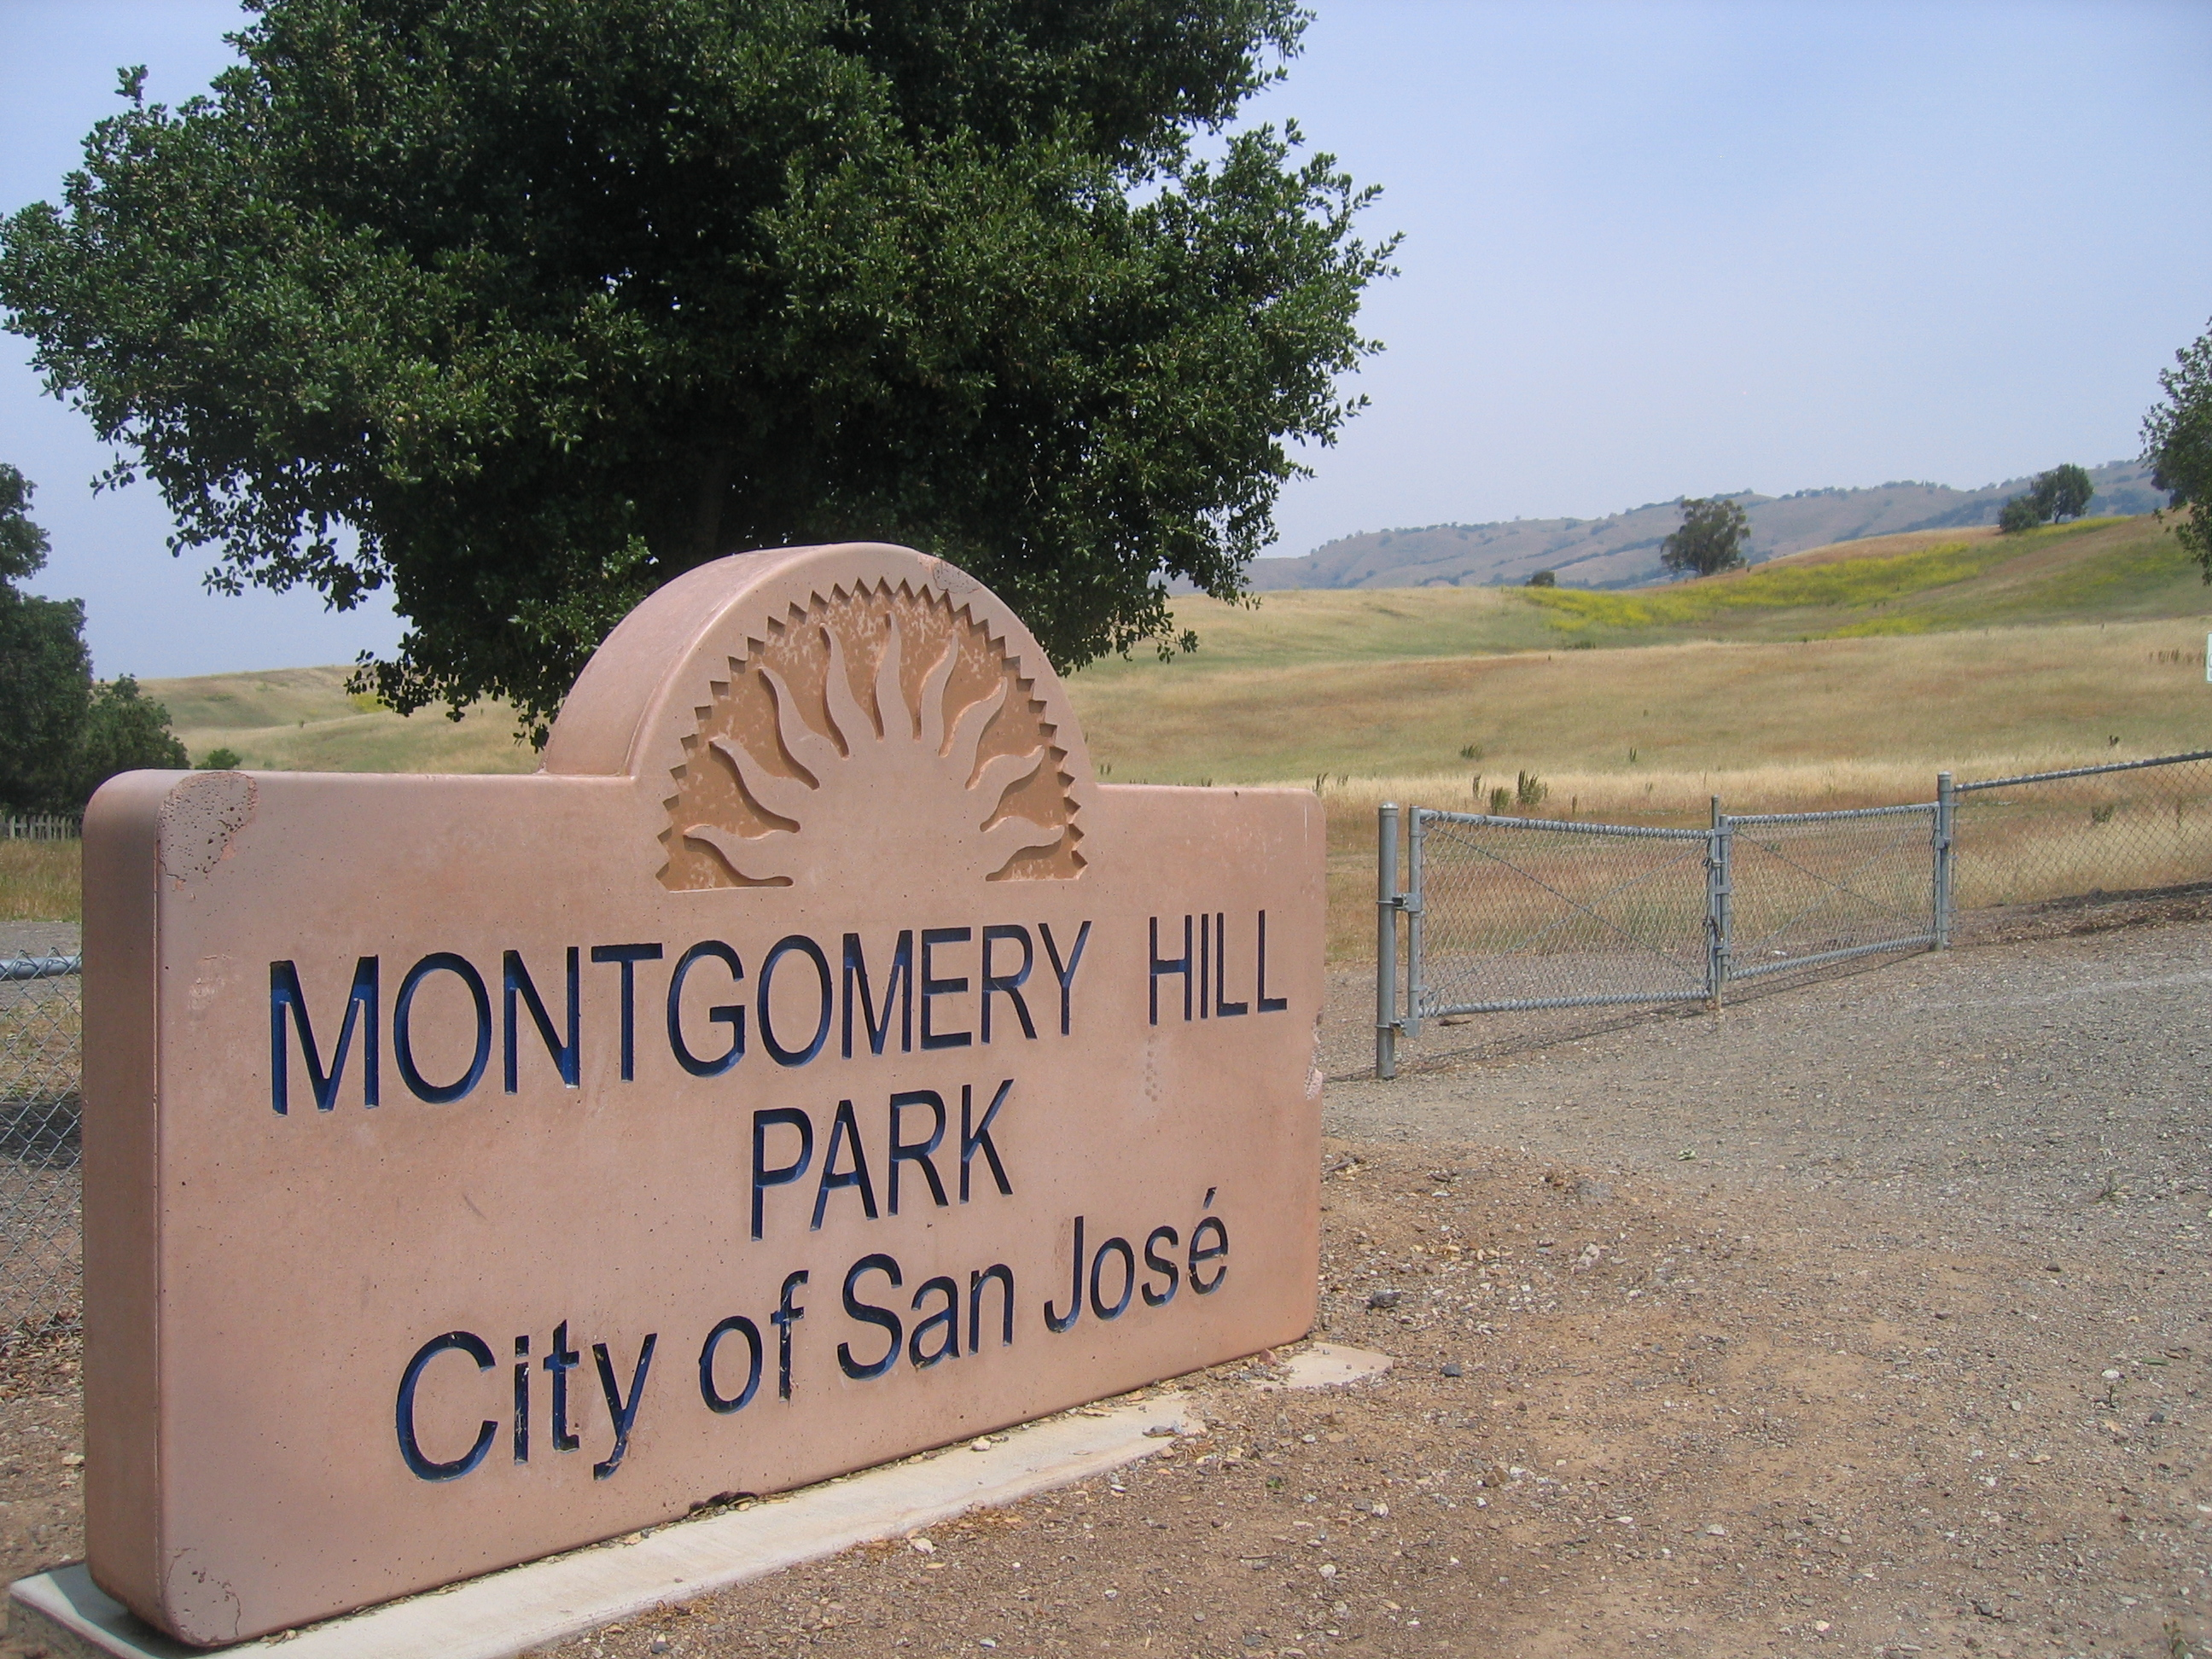 Montgomery Hill Park